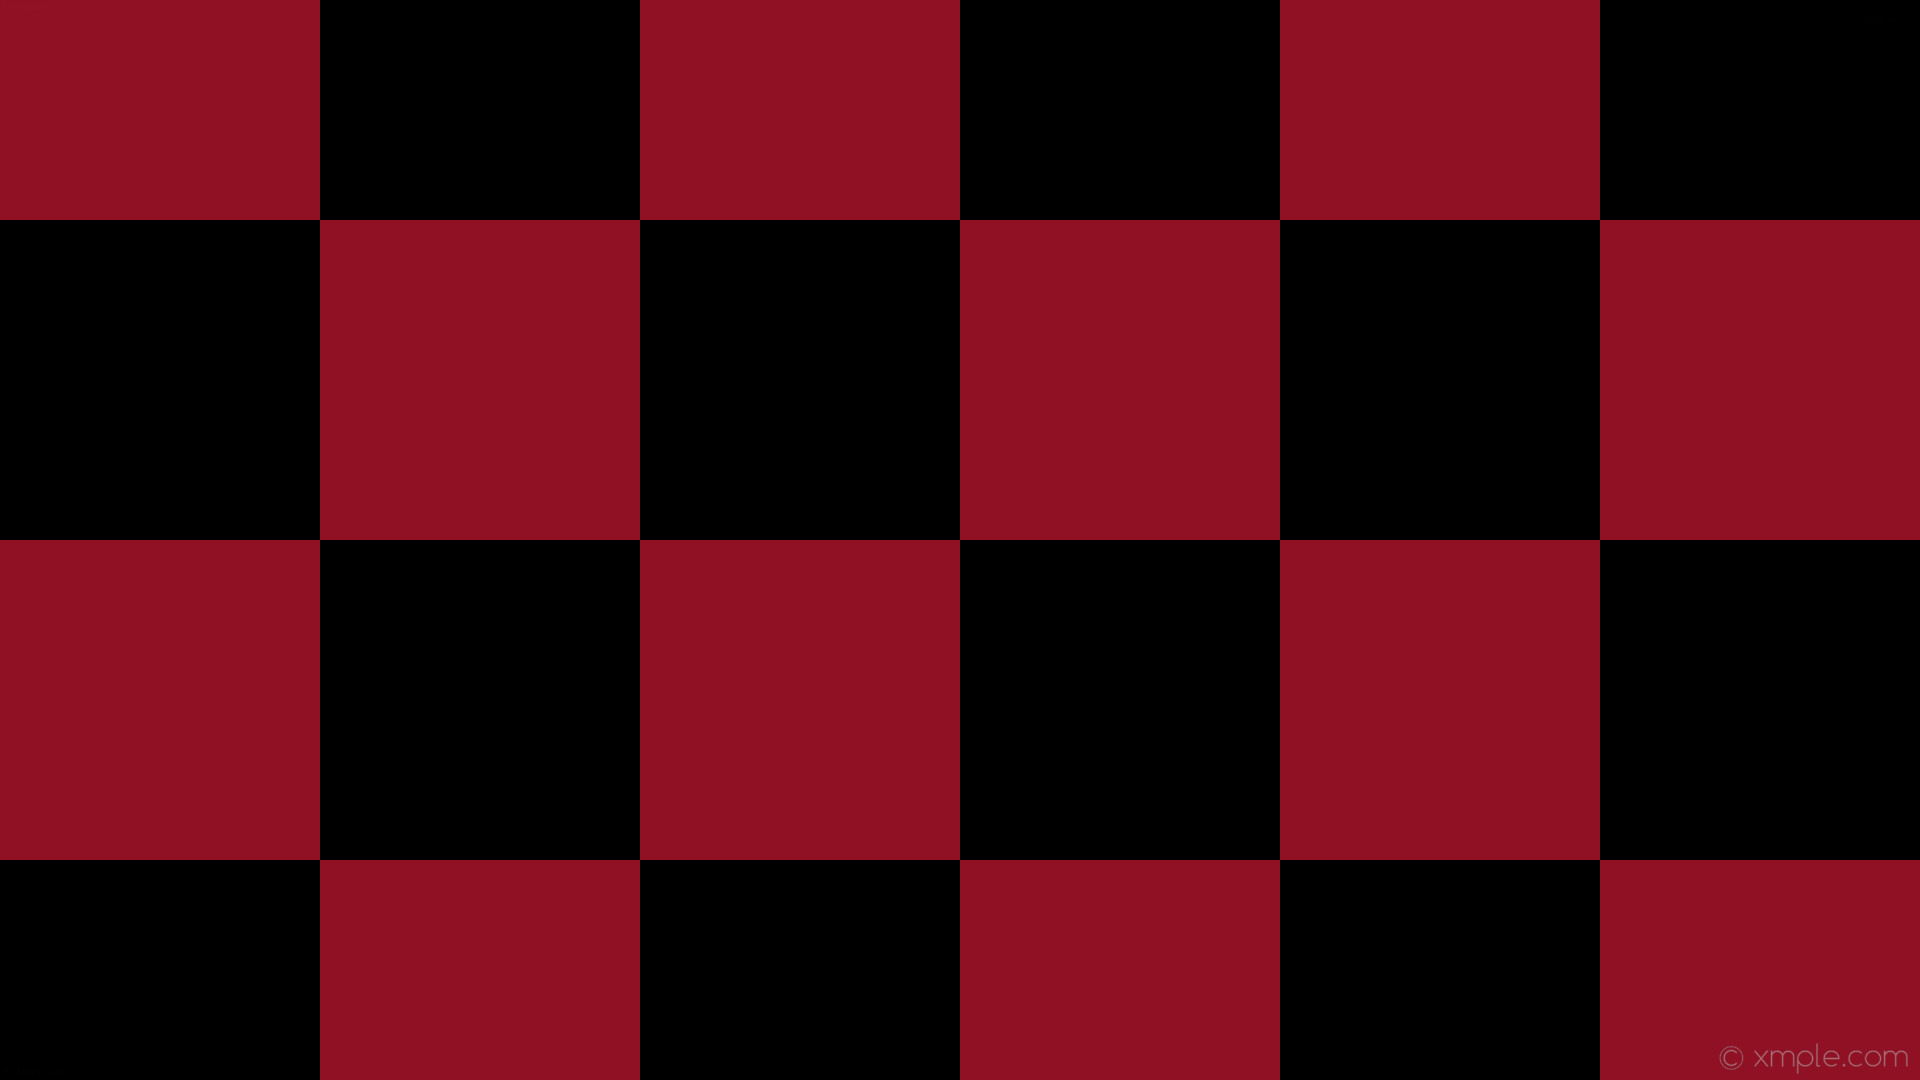 1920x1080 wallpaper black red checkered squares #000000 #901024 diagonal 0° 320px